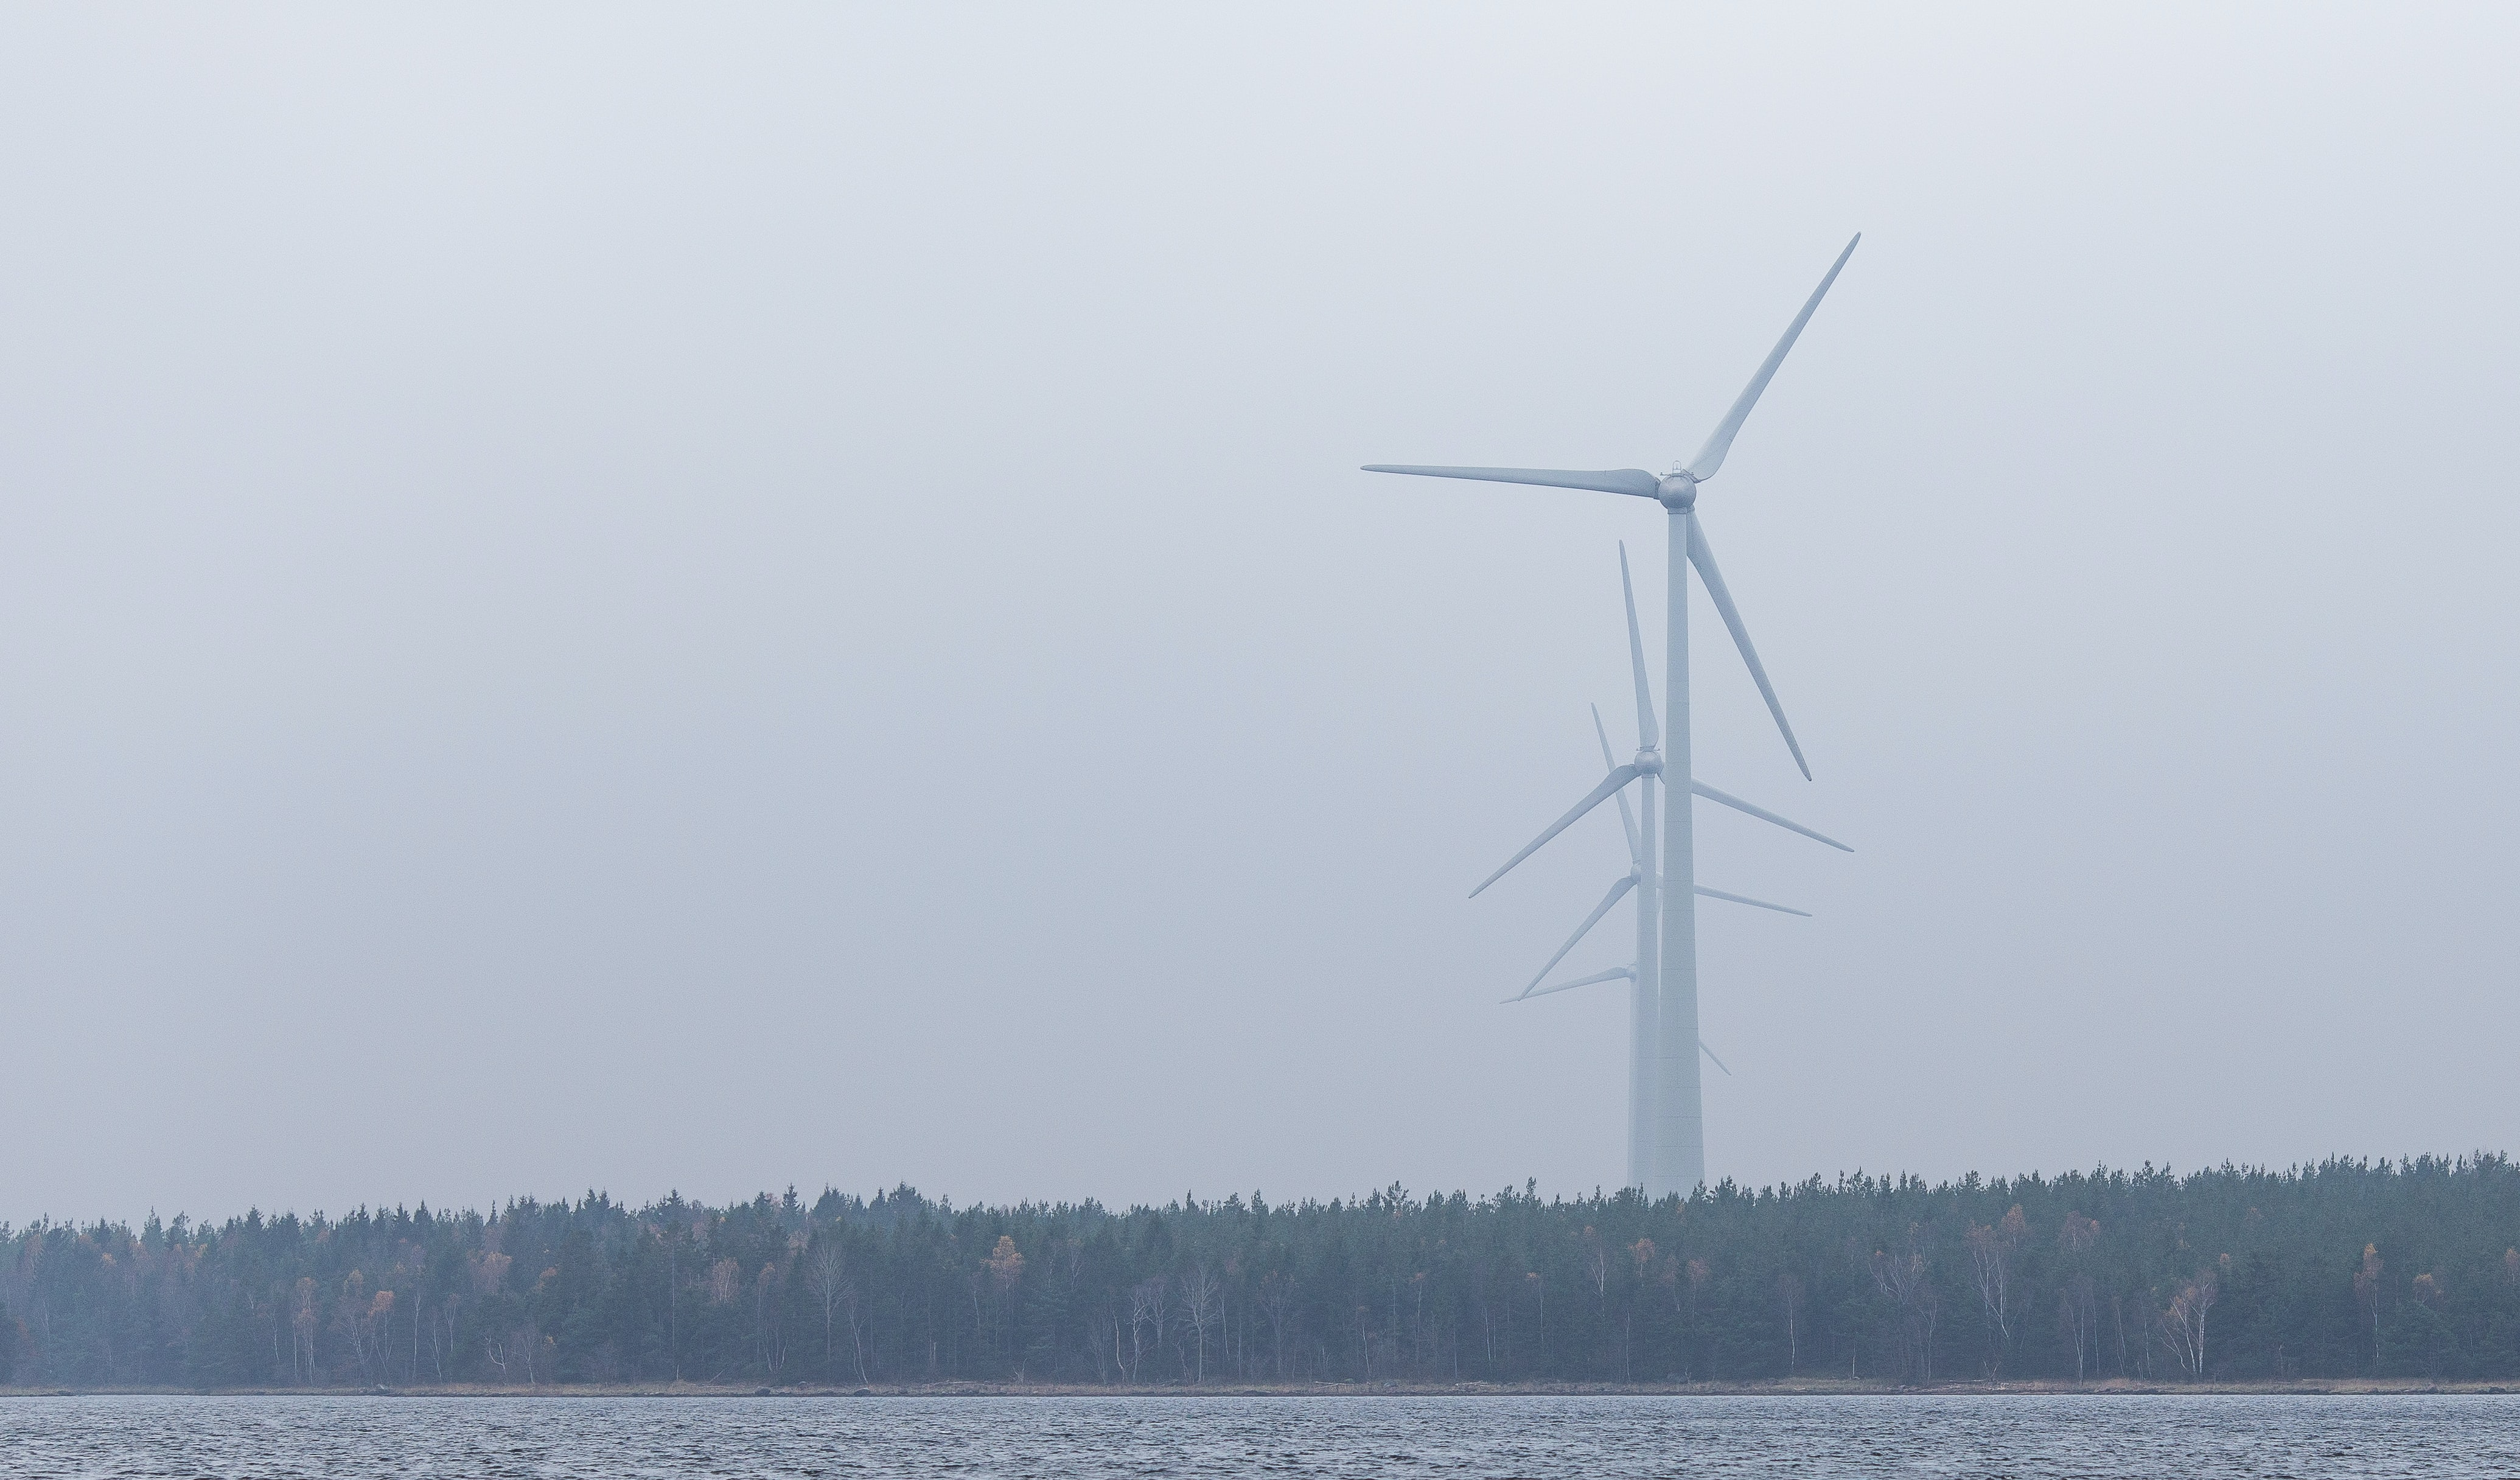 A wind turbine towering in the foggy sky behind a forest